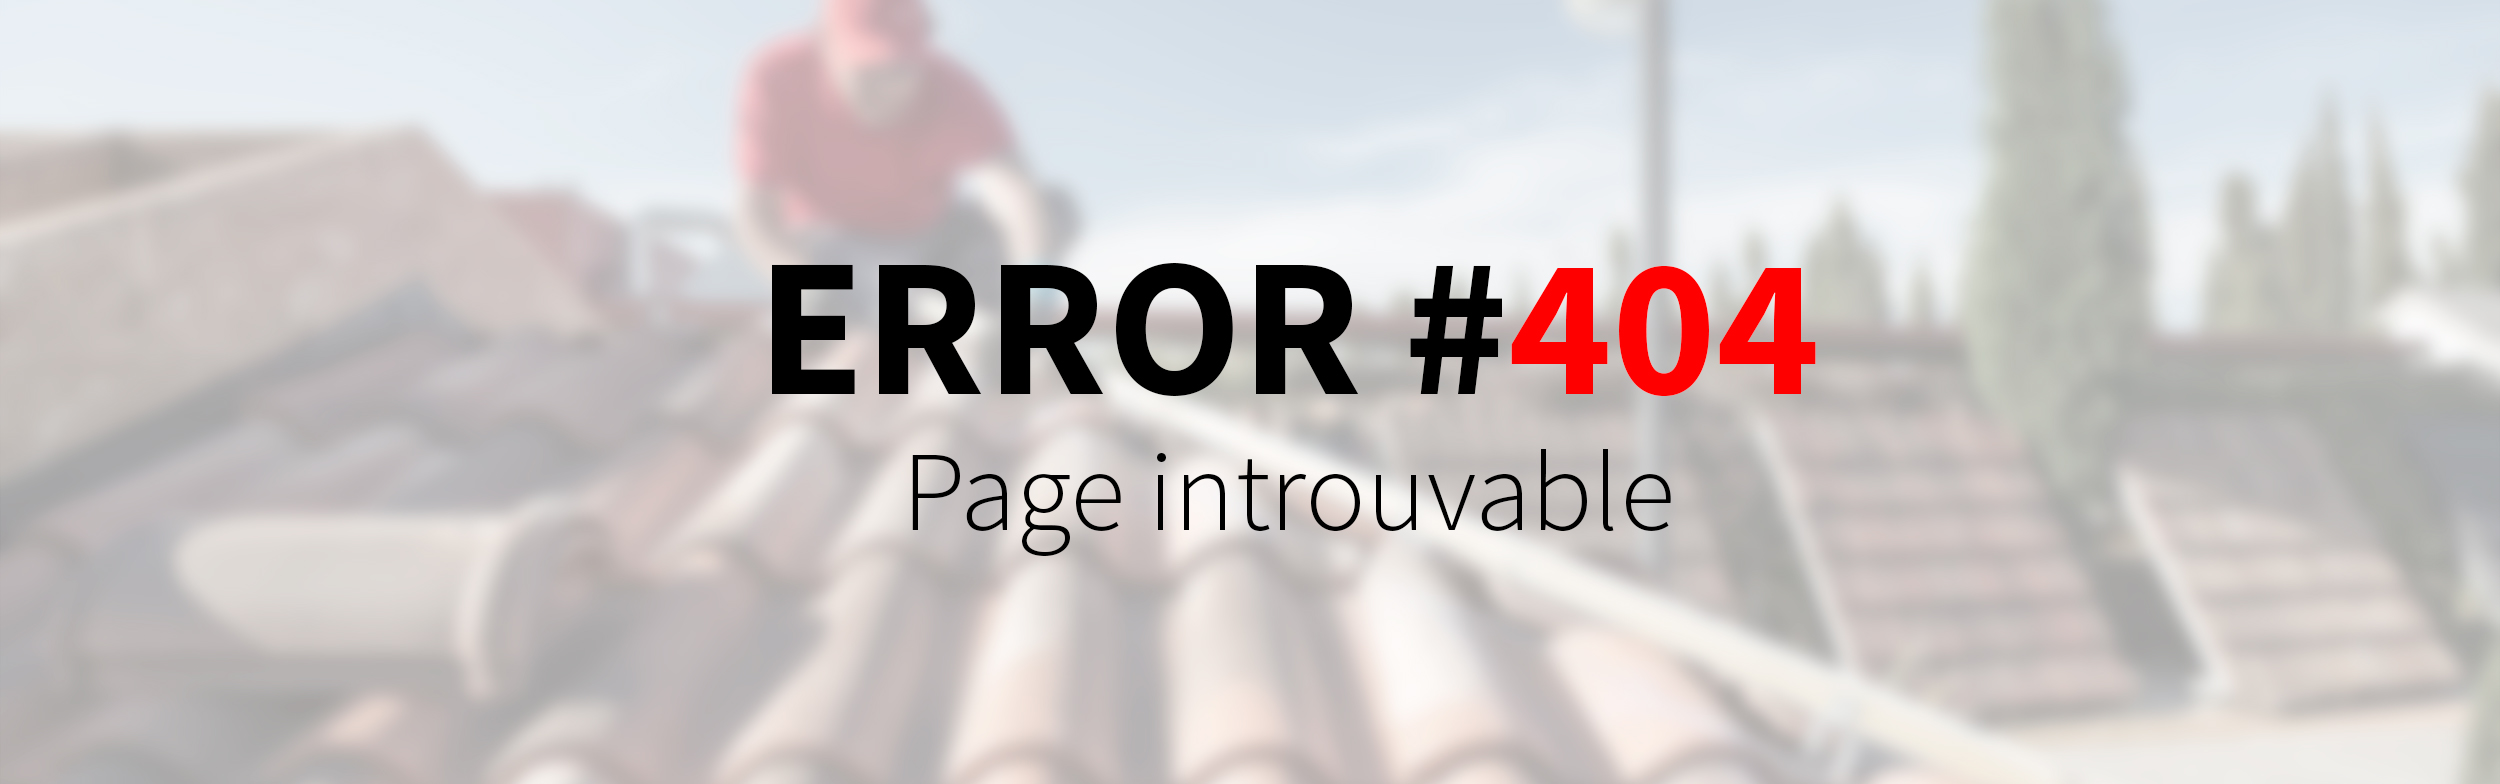 404 Page Introuvable